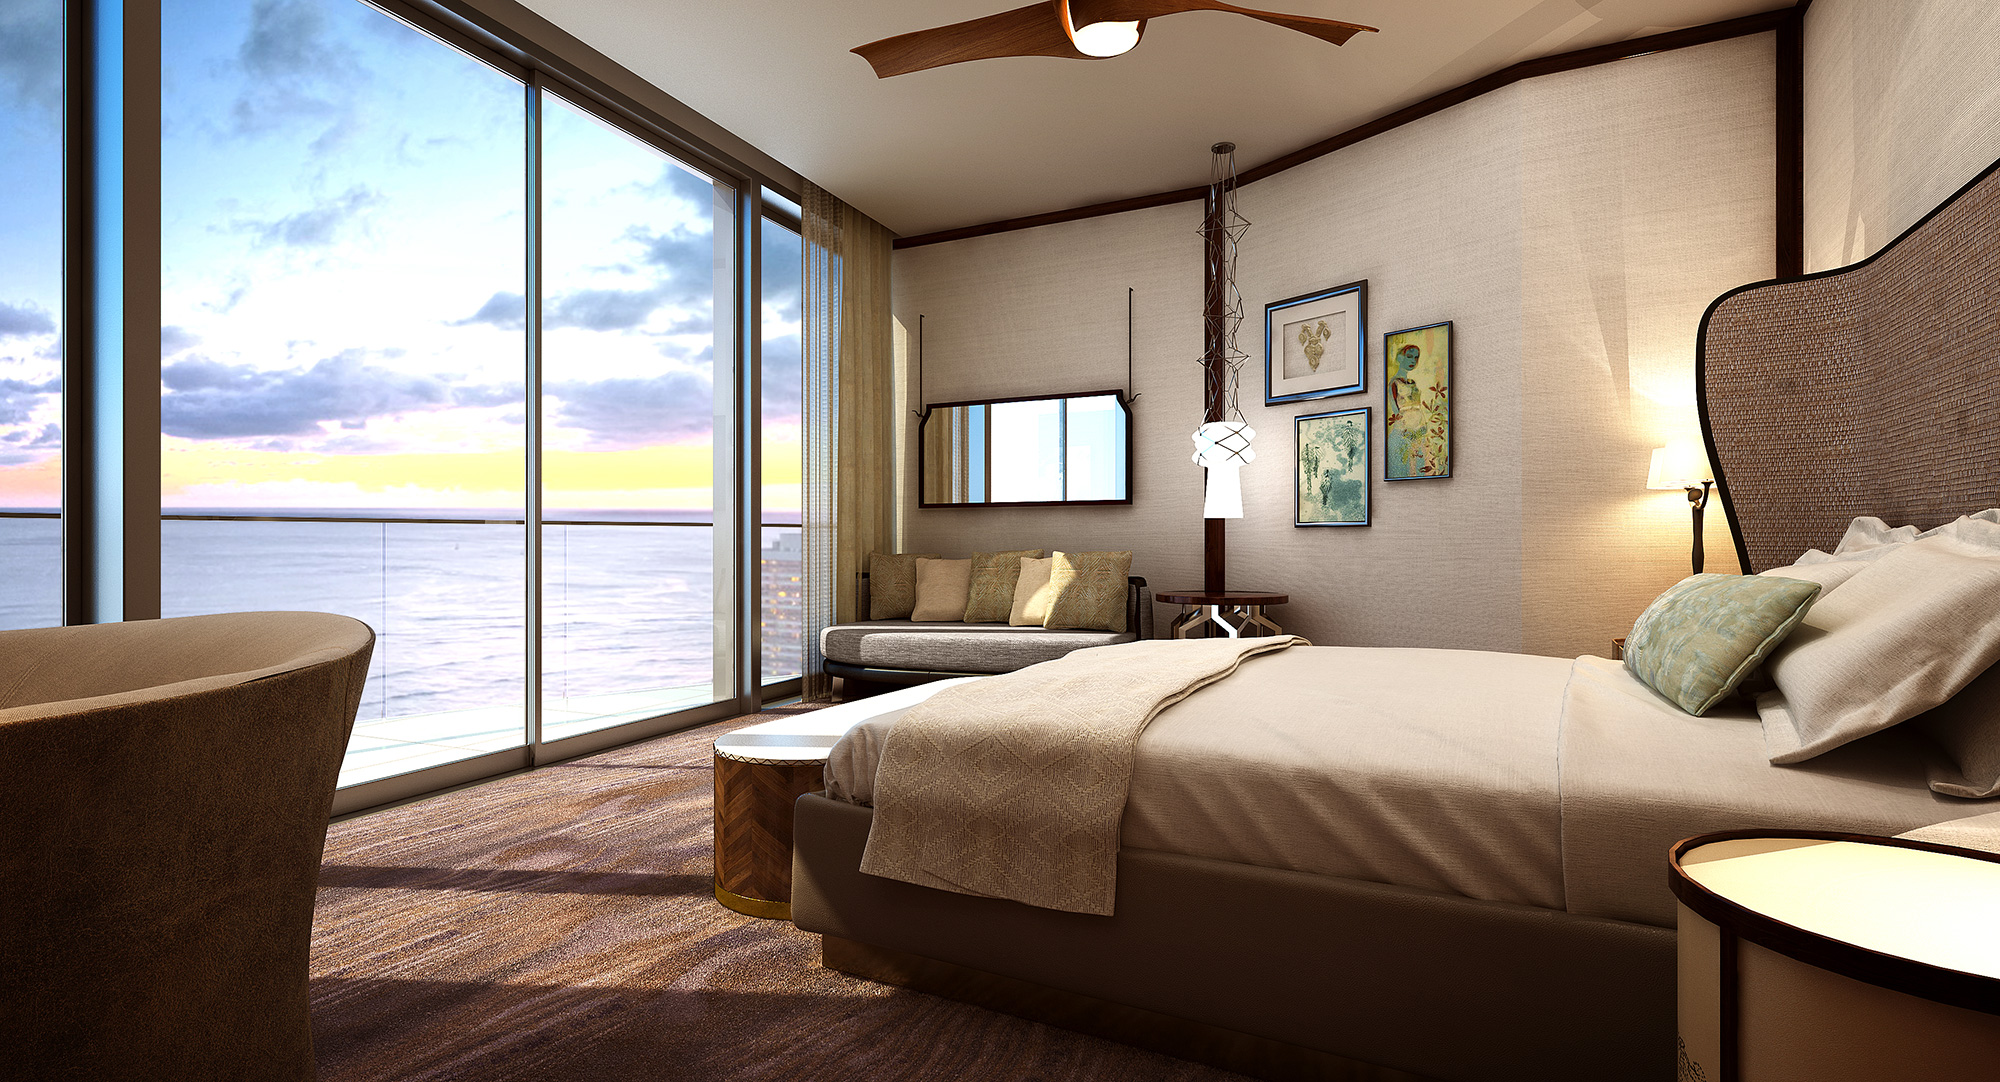 Indidesign luxury hotel for Luxury hotel project